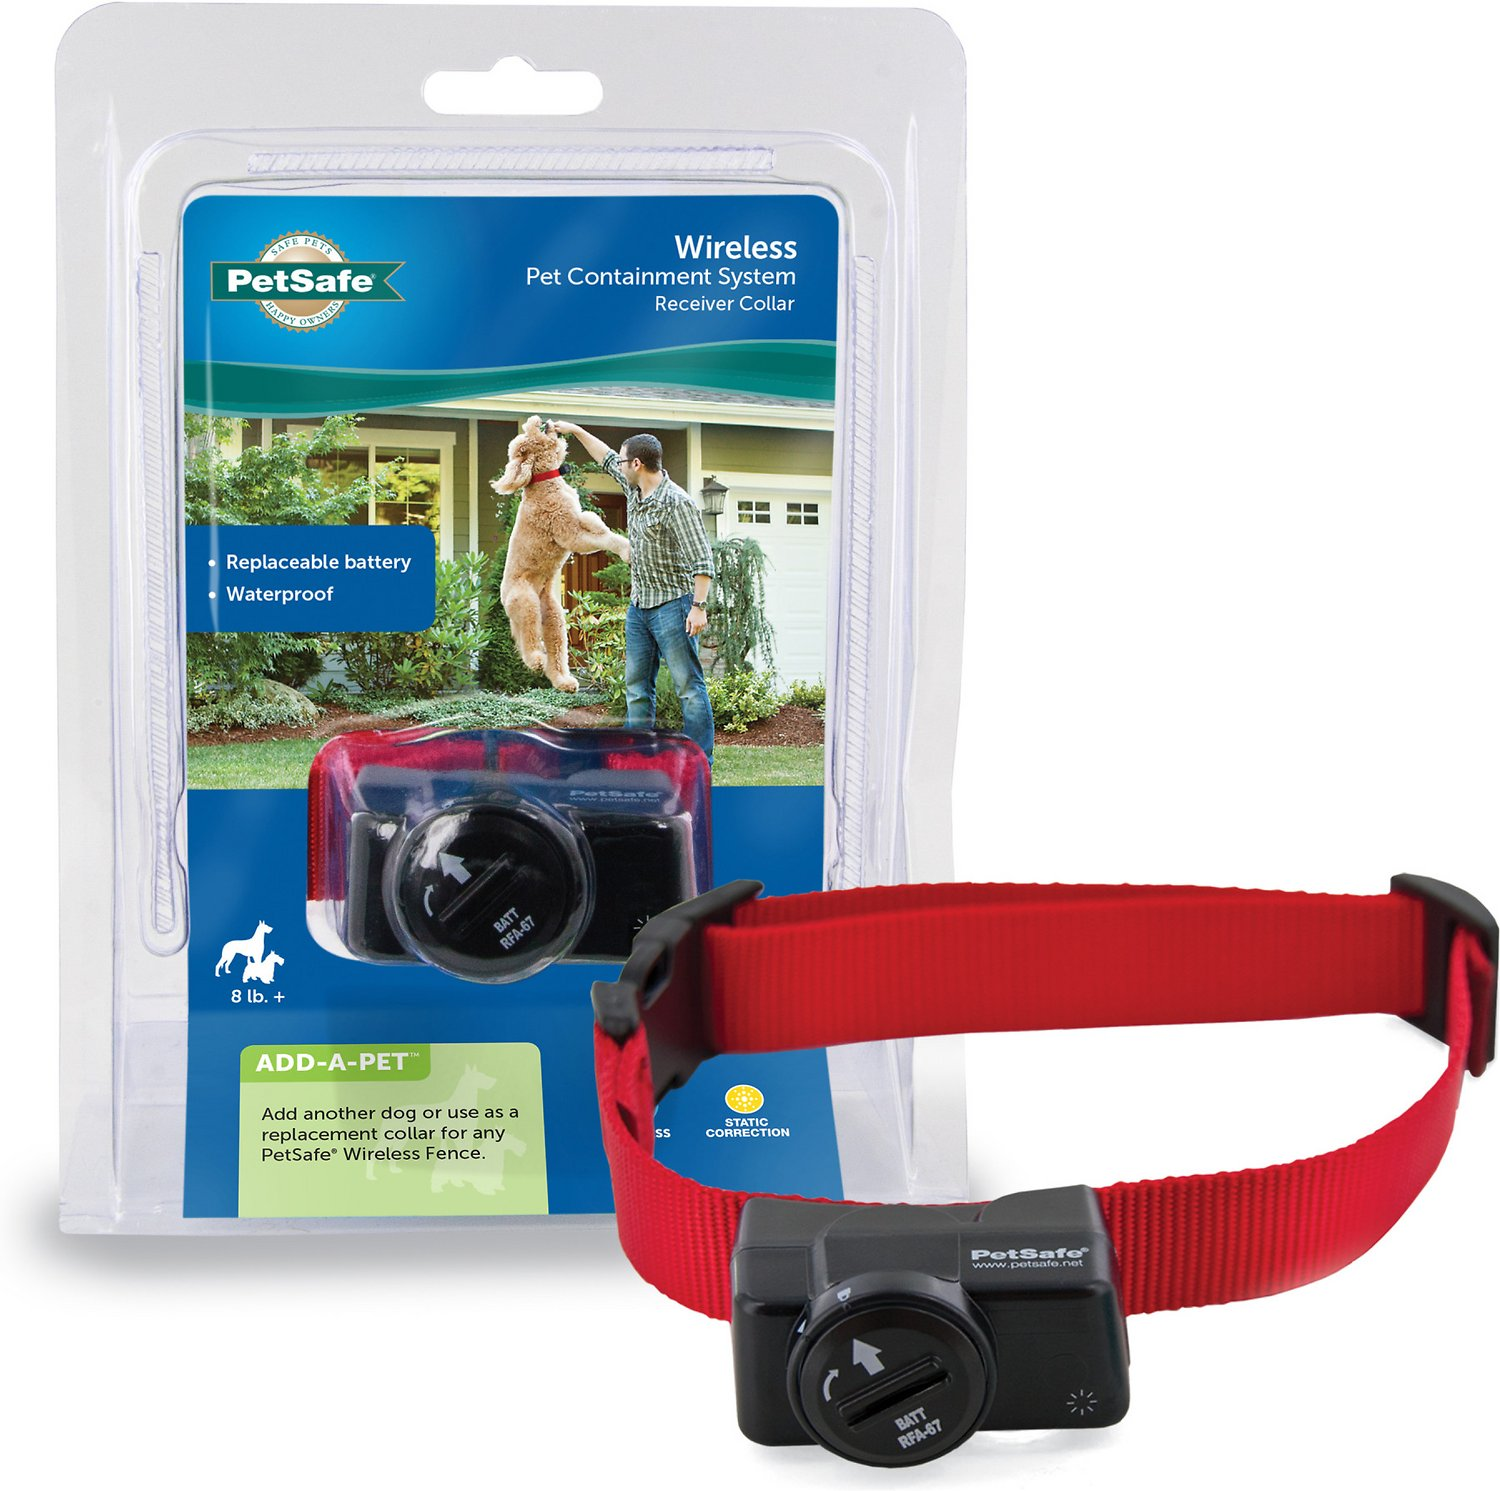 petsafe extra wireless fence receiver collar